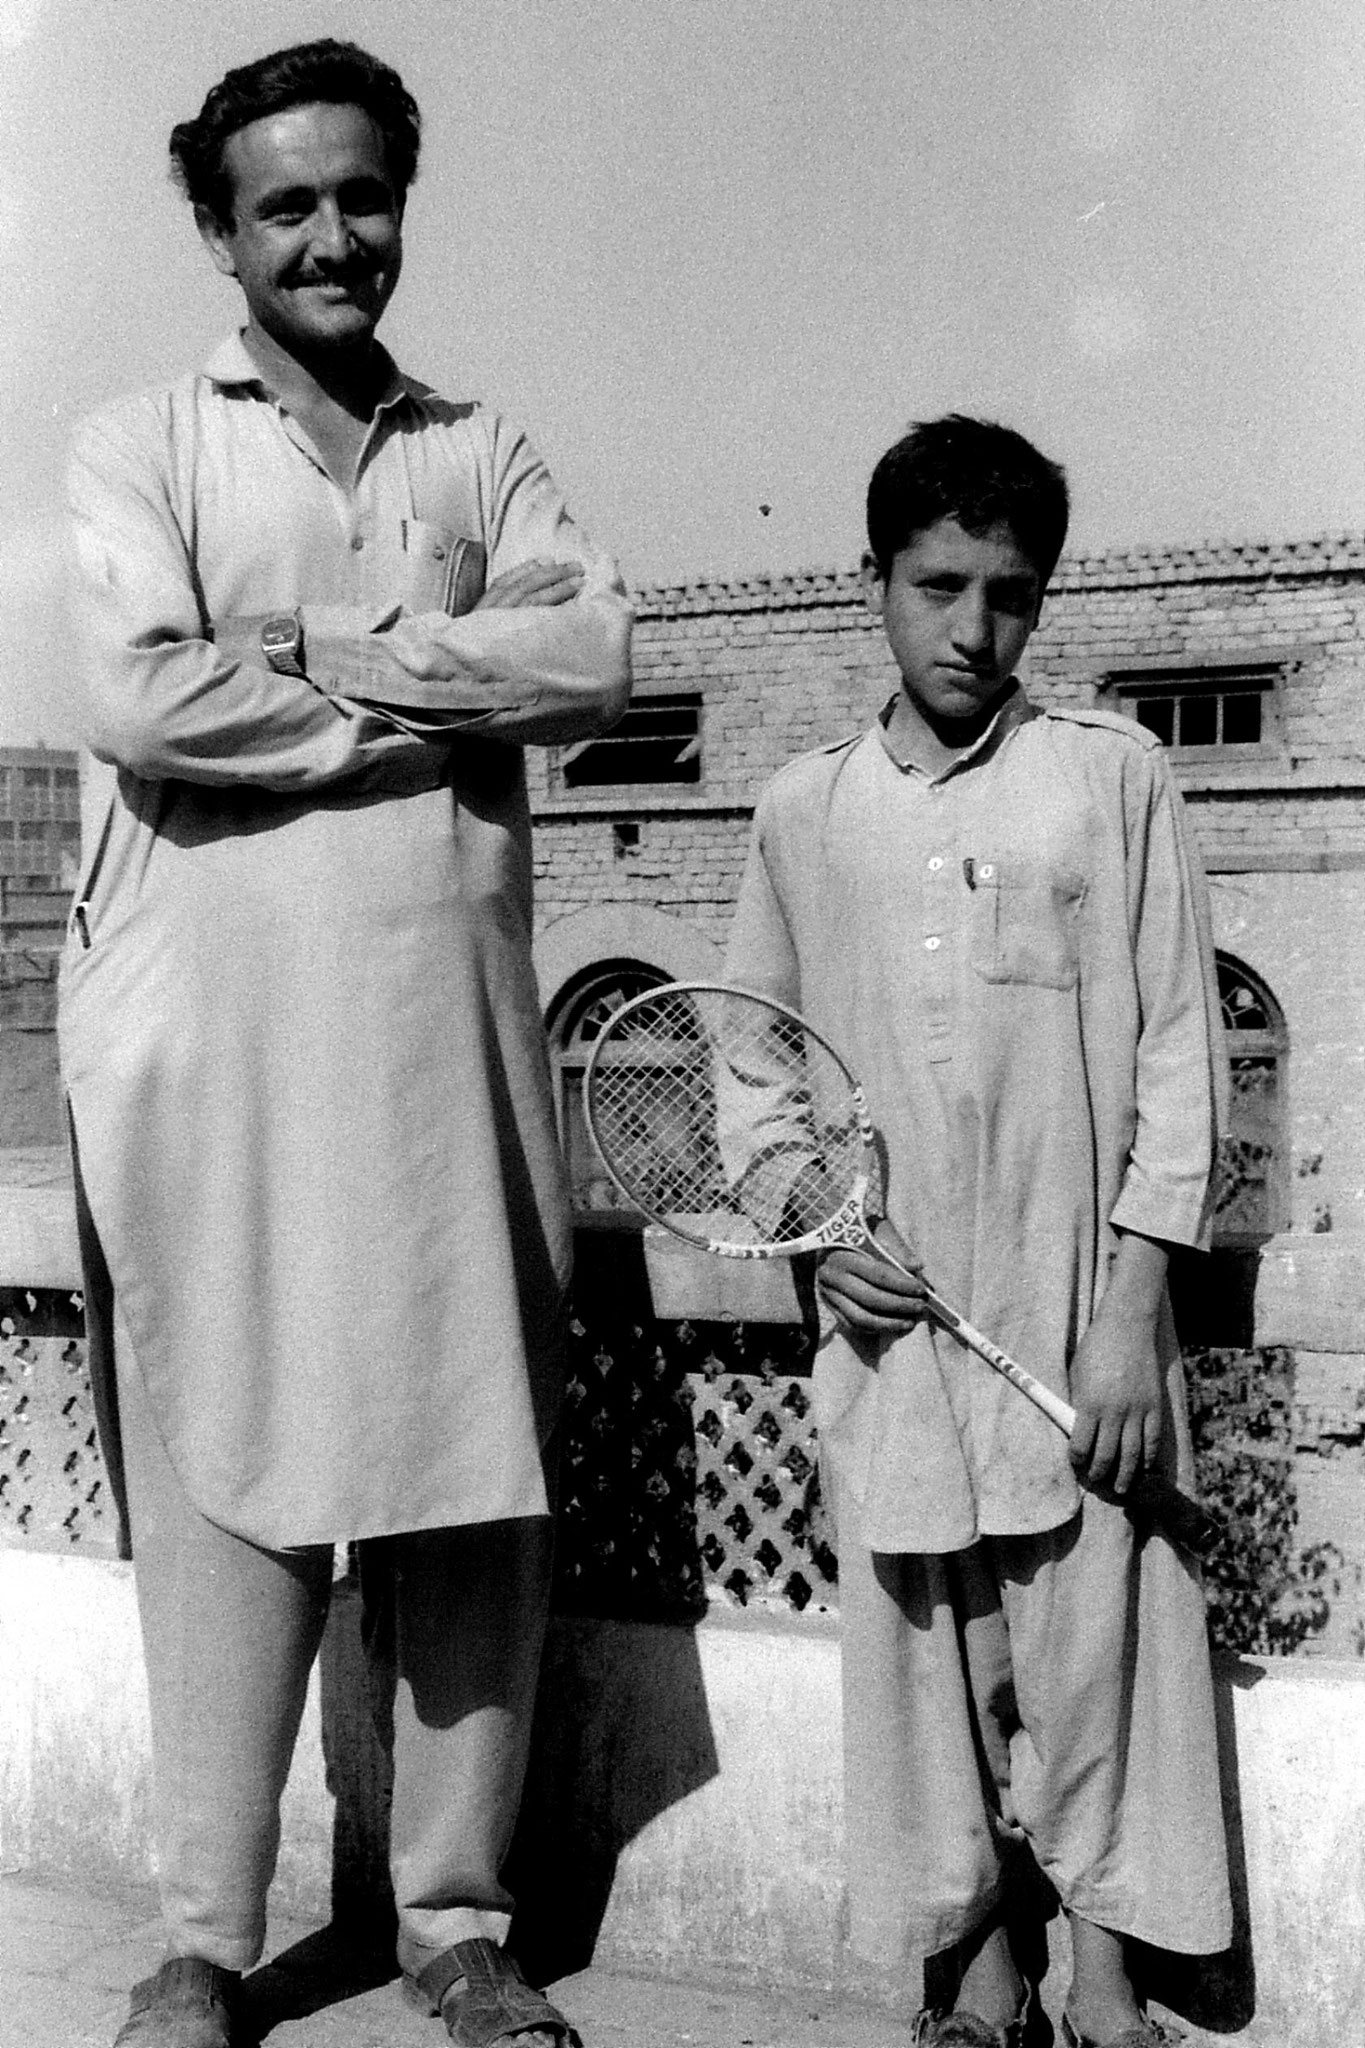 5/11/1989: 20: Peshawar, man and boy at quit factory